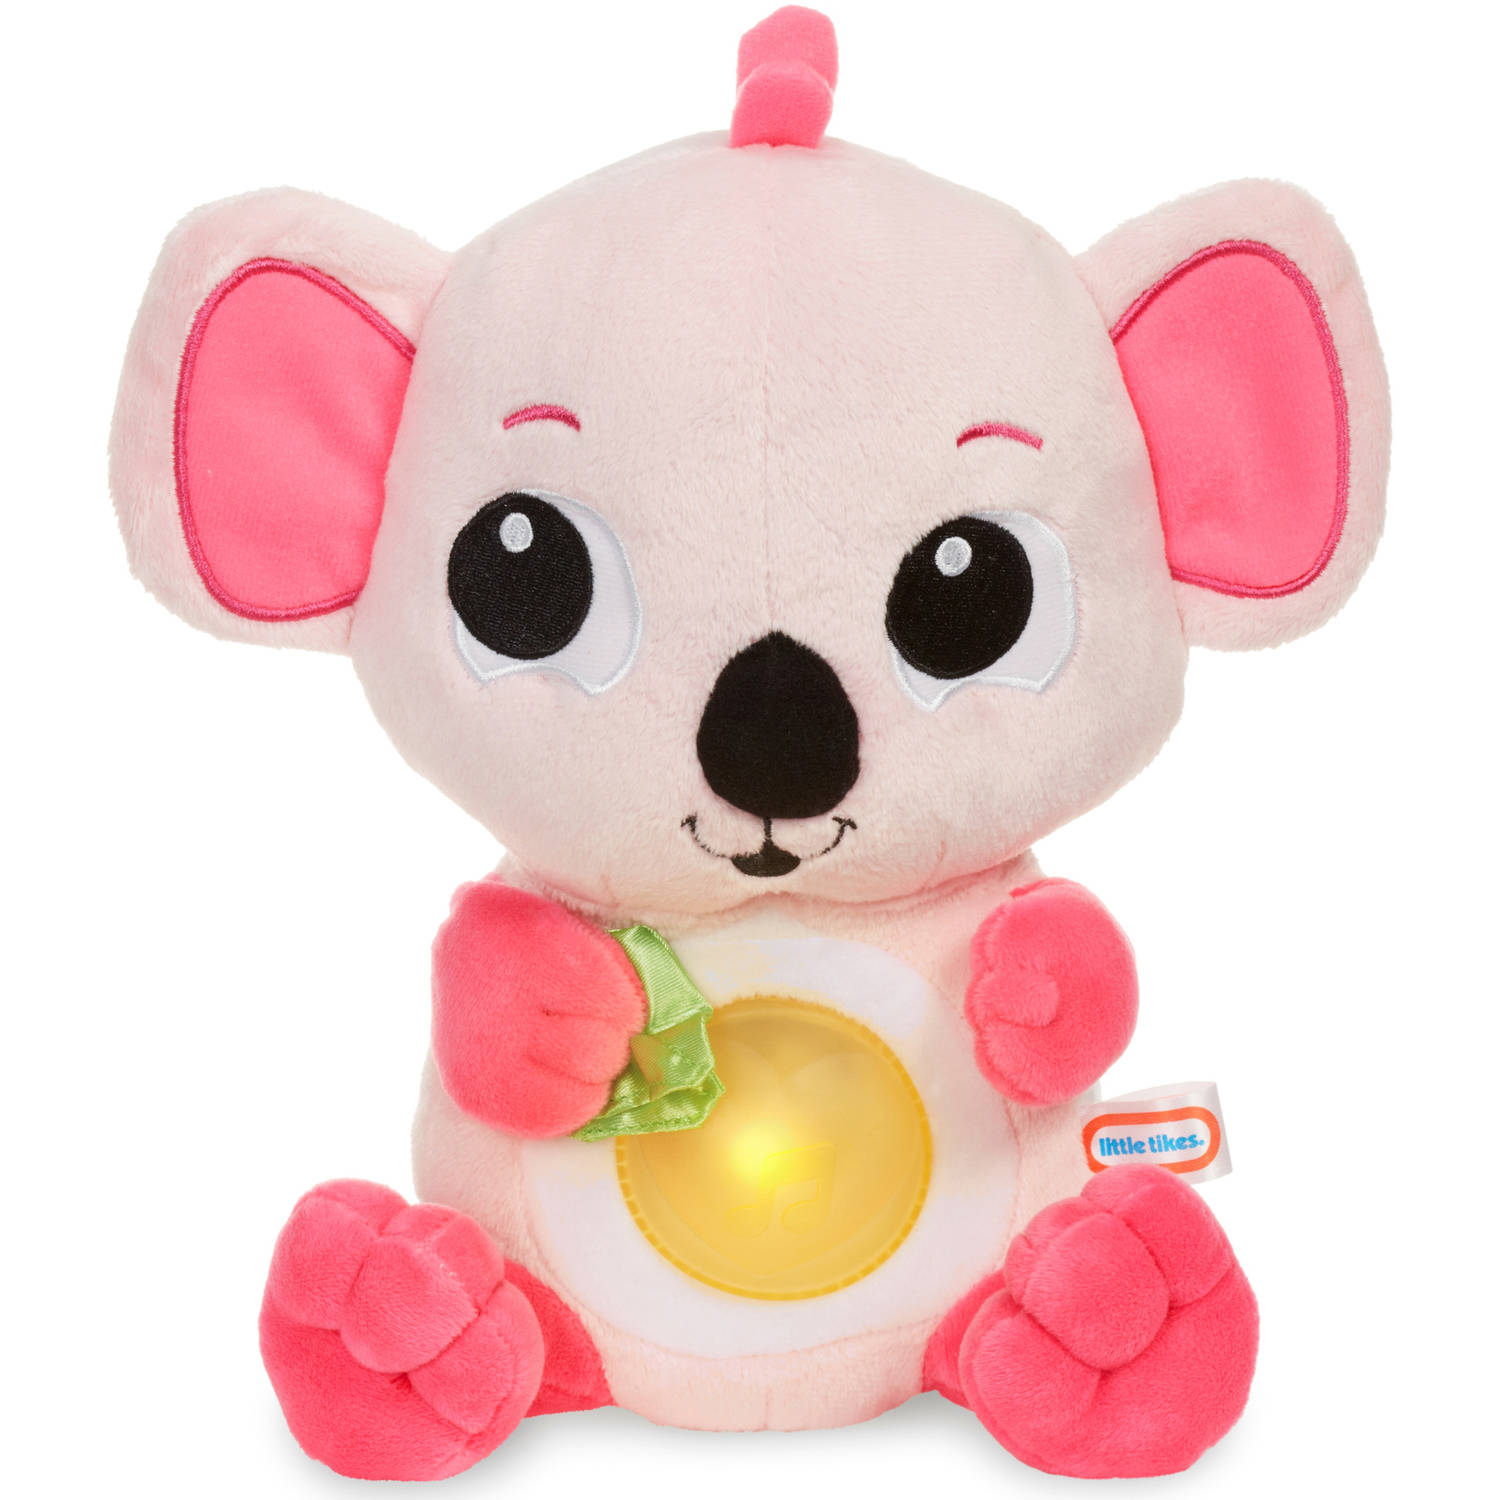 Little Tikes Soothe Me Koala- Pink by Little Tikes